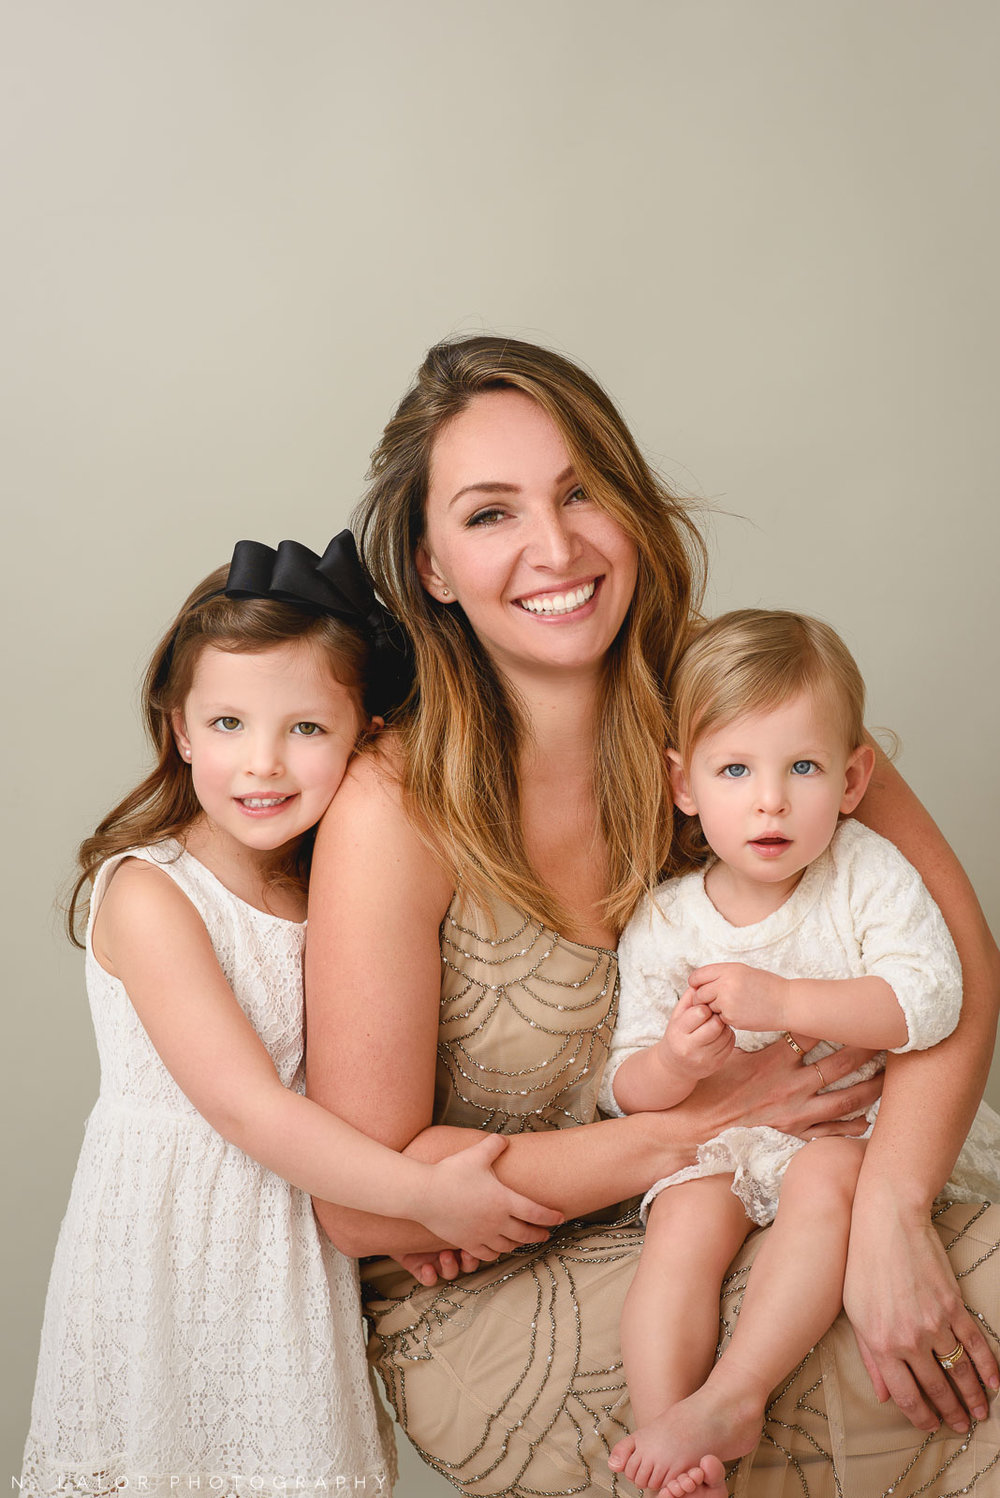 Mom with her two daughters. A Mother and Daughter photoshoot with N. Lalor Photography in Greenwich, Connecticut.